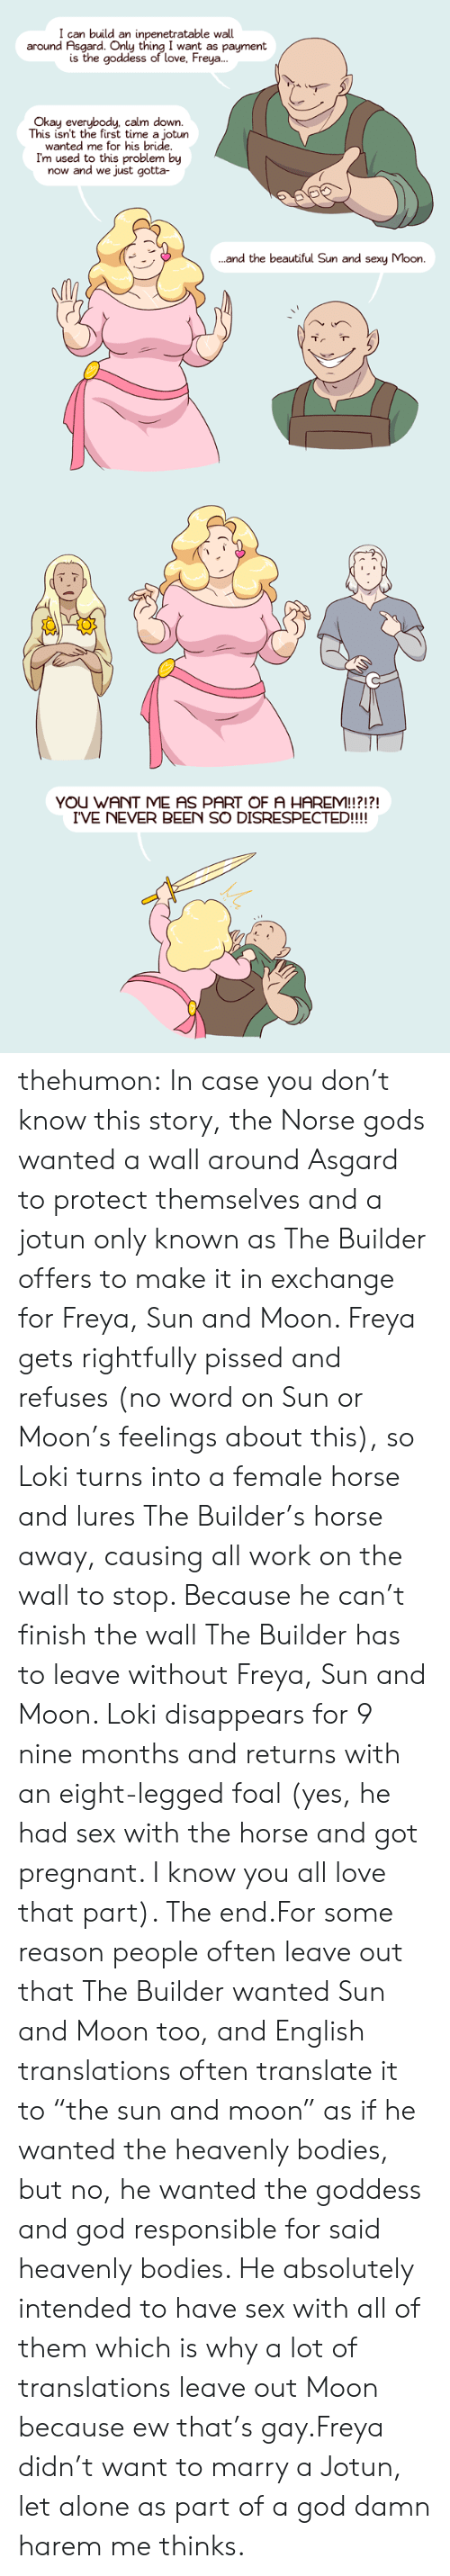 """Being Alone, Beautiful, and Bodies : I can build an inpenetratable wall  around Asgard. Only thing I want as payment  is the goddess of love, Freya..  Okay everybody, calm down.  This isn't the first time a jotun  wanted me for his bride  I'm used to this problem by  now and we just gotta-  and the beautiful Sun and sexy Moon.   YOU WANT ME AS PART OF A HAREM!!?!?!  I'VE NEVER BEEN SO DISRESPECTED!!!! thehumon:  In case you don't know this story, the Norse gods wanted a wall around Asgard to protect themselves and a jotun only known as The Builder offers to make it in exchange for Freya, Sun and Moon. Freya gets rightfully pissed and refuses (no word on Sun or Moon's feelings about this), so Loki turns into a female horse and lures The Builder's horse away, causing all work on the wall to stop. Because he can't finish the wall The Builder has to leave without Freya, Sun and Moon. Loki disappears for 9 nine months and returns with an eight-legged foal (yes, he had sex with the horse and got pregnant. I know you all love that part). The end.For some reason people often leave out that The Builder wanted Sun and Moon too, and English translations often translate it to """"the sun and moon"""" as if he wanted the heavenly bodies, but no, he wanted the goddess and god responsible for said heavenly bodies. He absolutely intended to have sex with all of them which is why a lot of translations leave out Moon because ew that's gay.Freya didn't want to marry a Jotun, let alone as part of a god damn harem me thinks."""